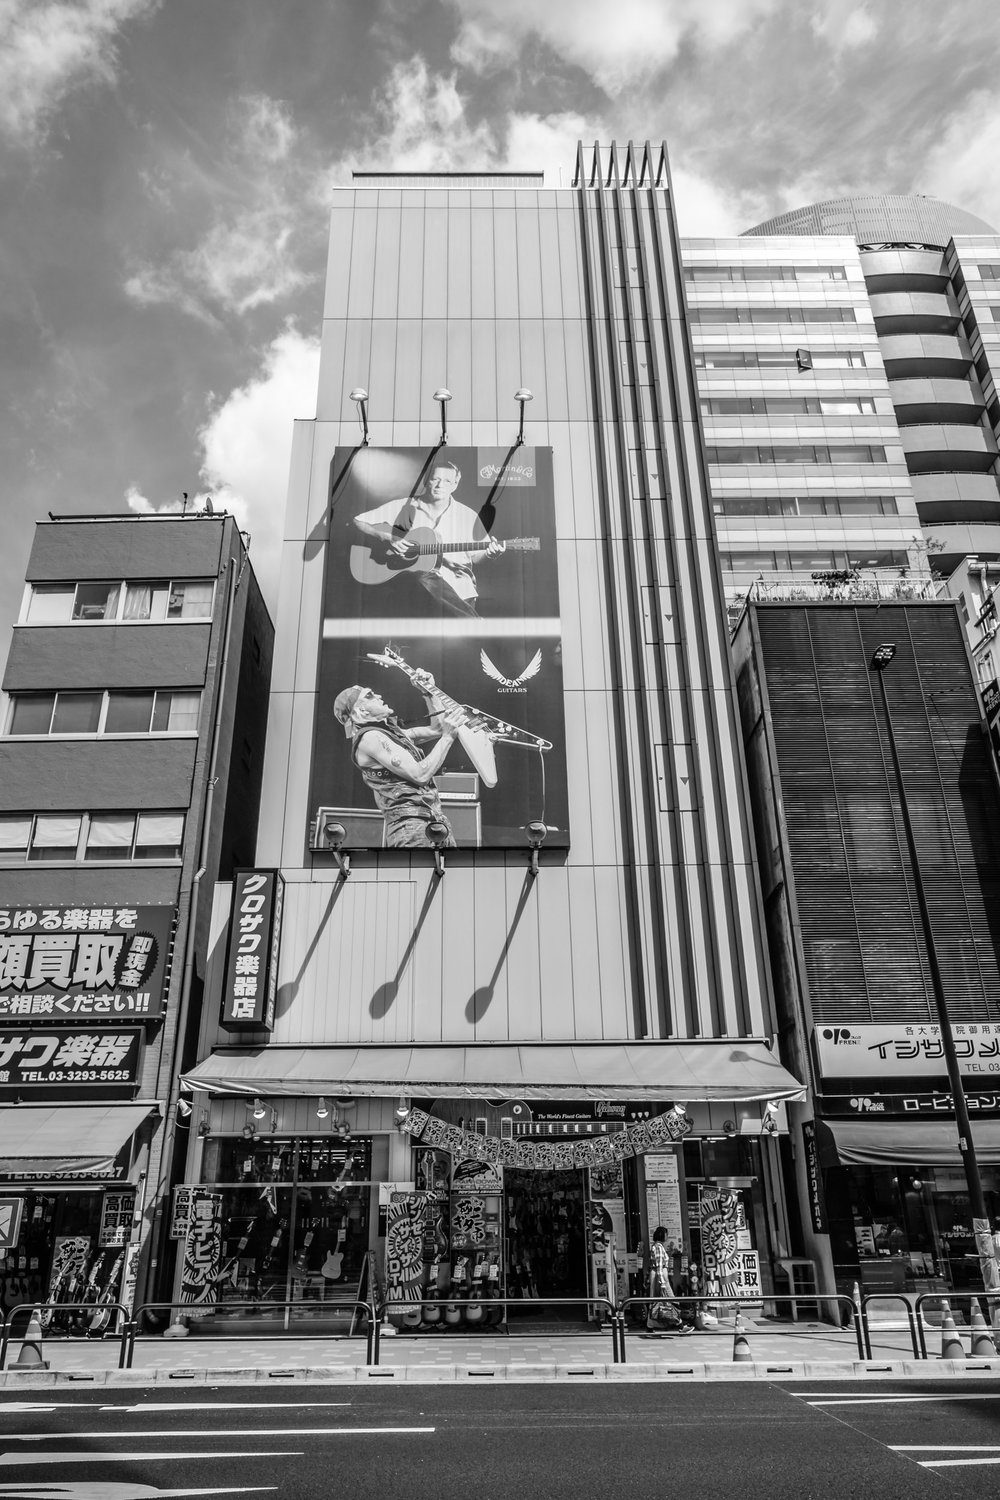 One of the guitar shops in Ochanomizu